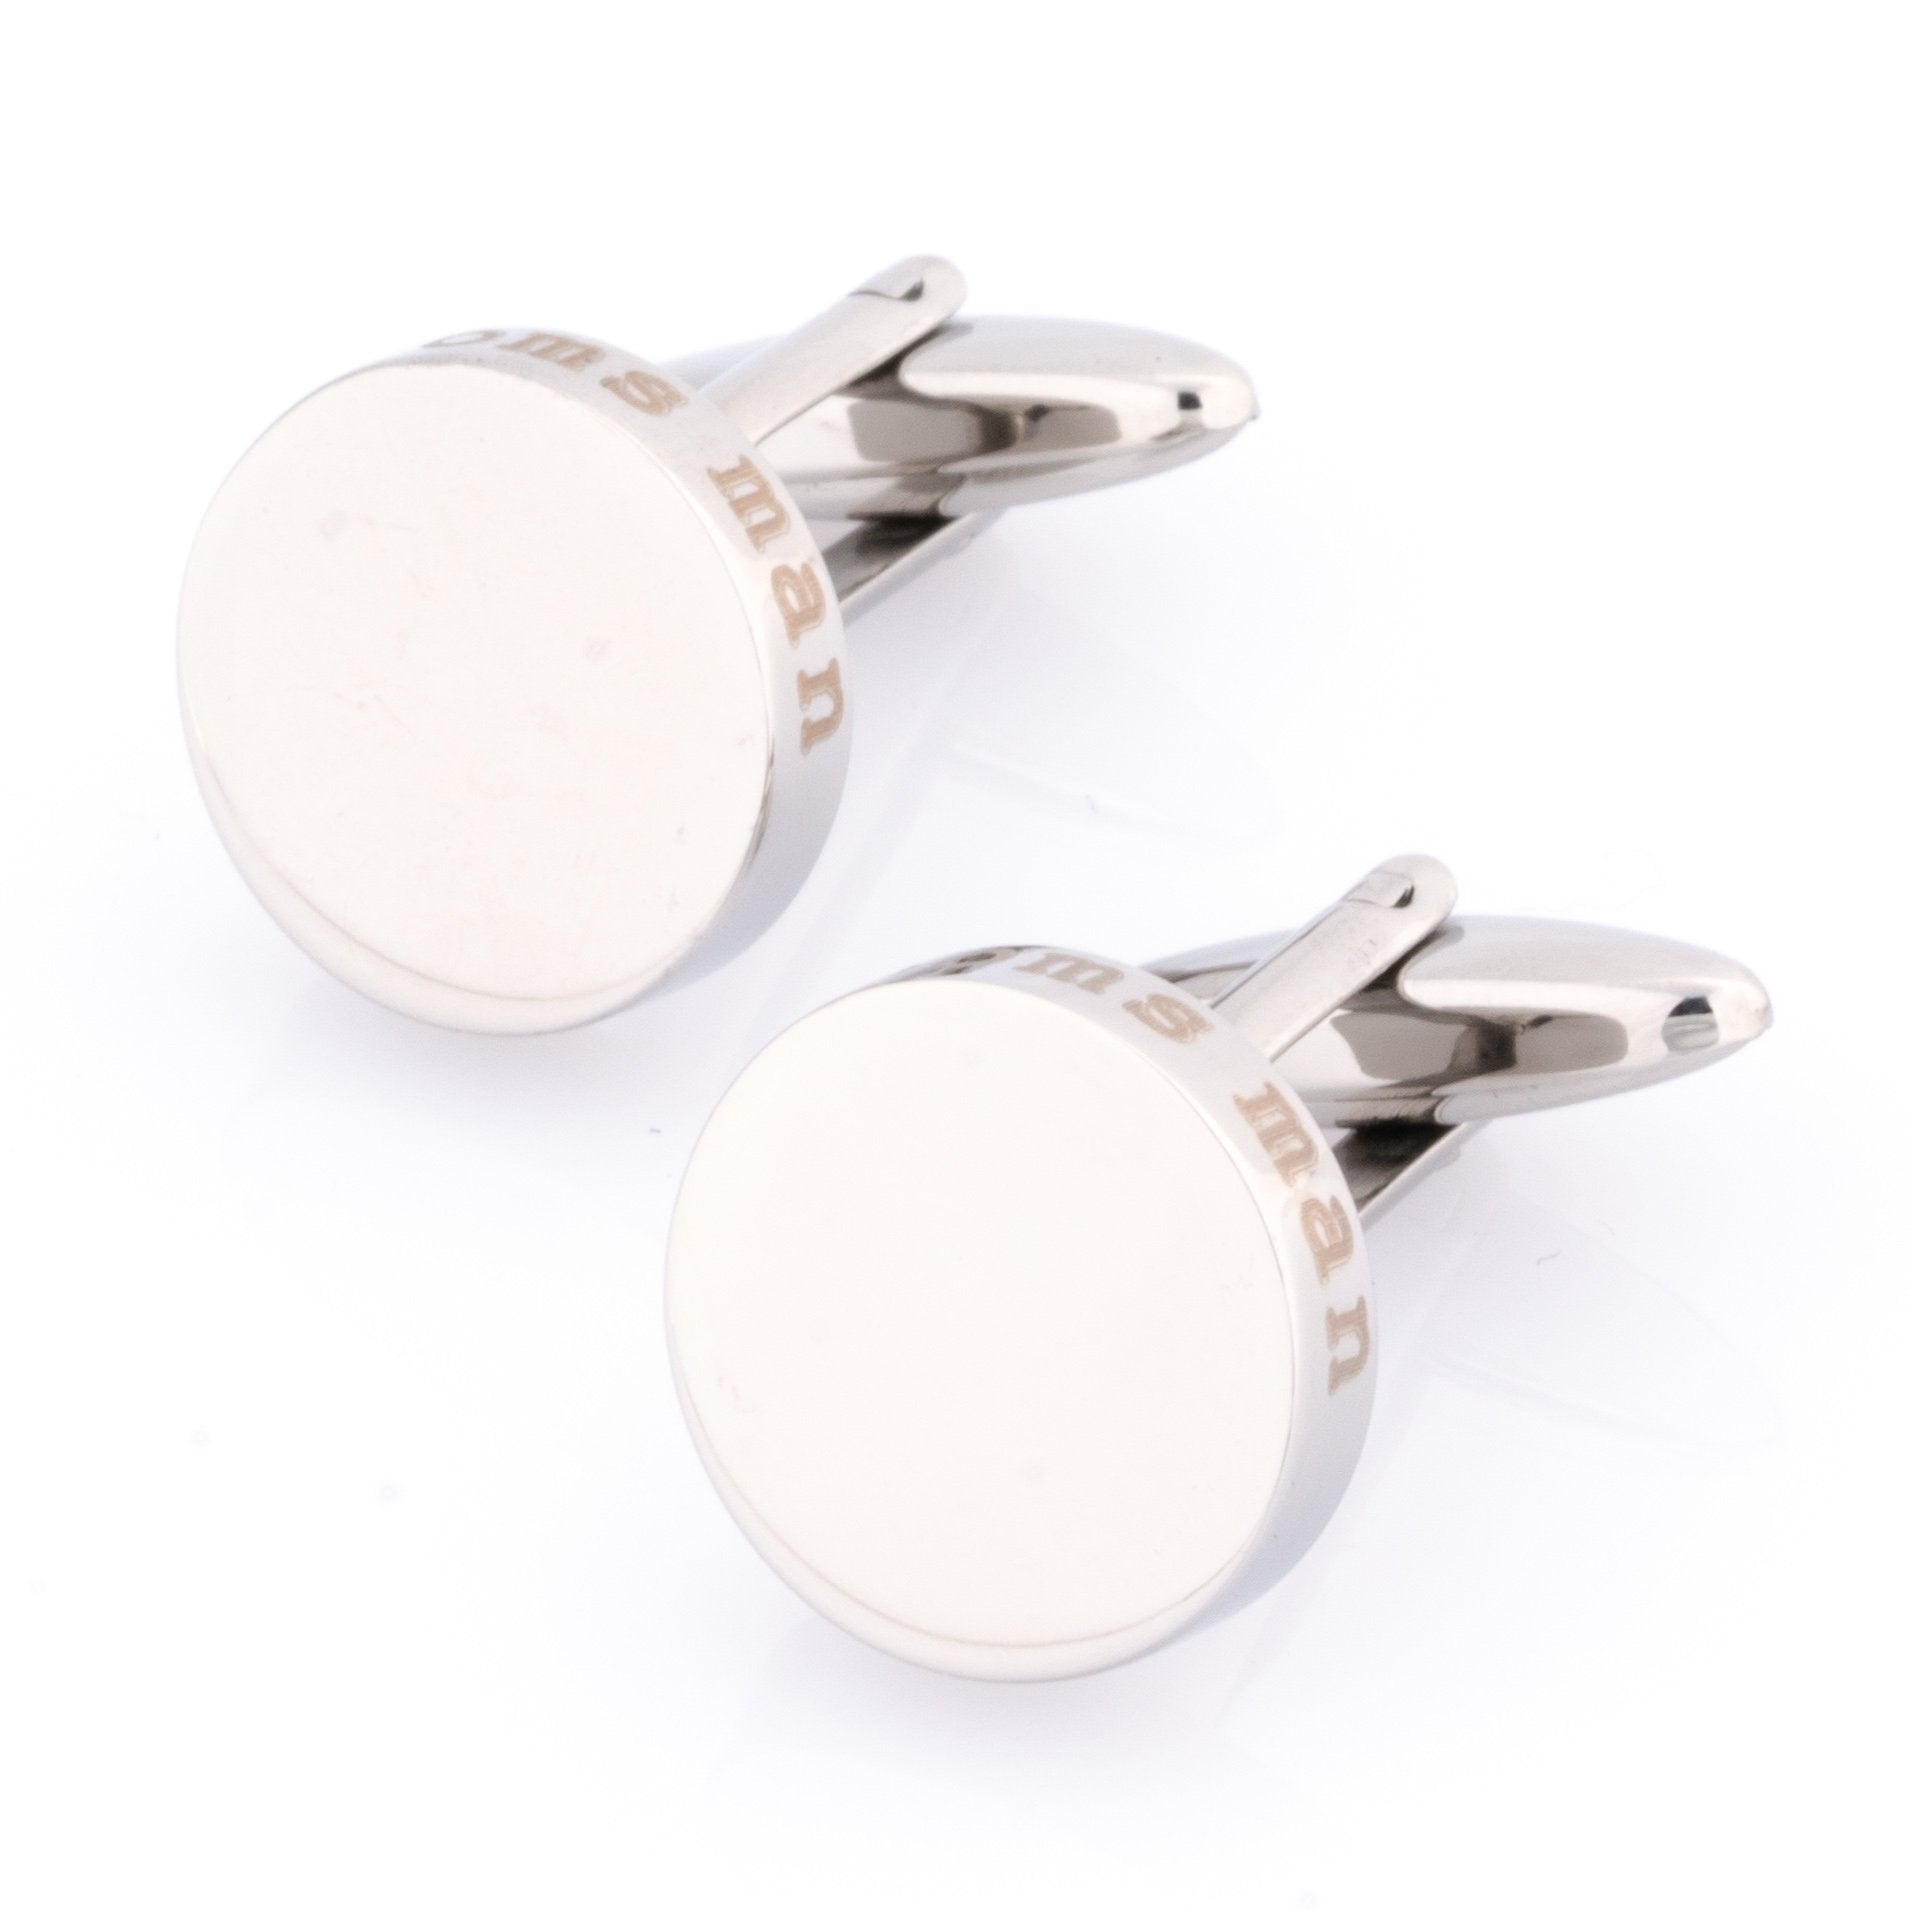 Groomsman Laser Etched Round Engravable Cufflinks, Wedding Cufflinks, Cuffed.com.au, CL9532, Wedding, Clinks Australia